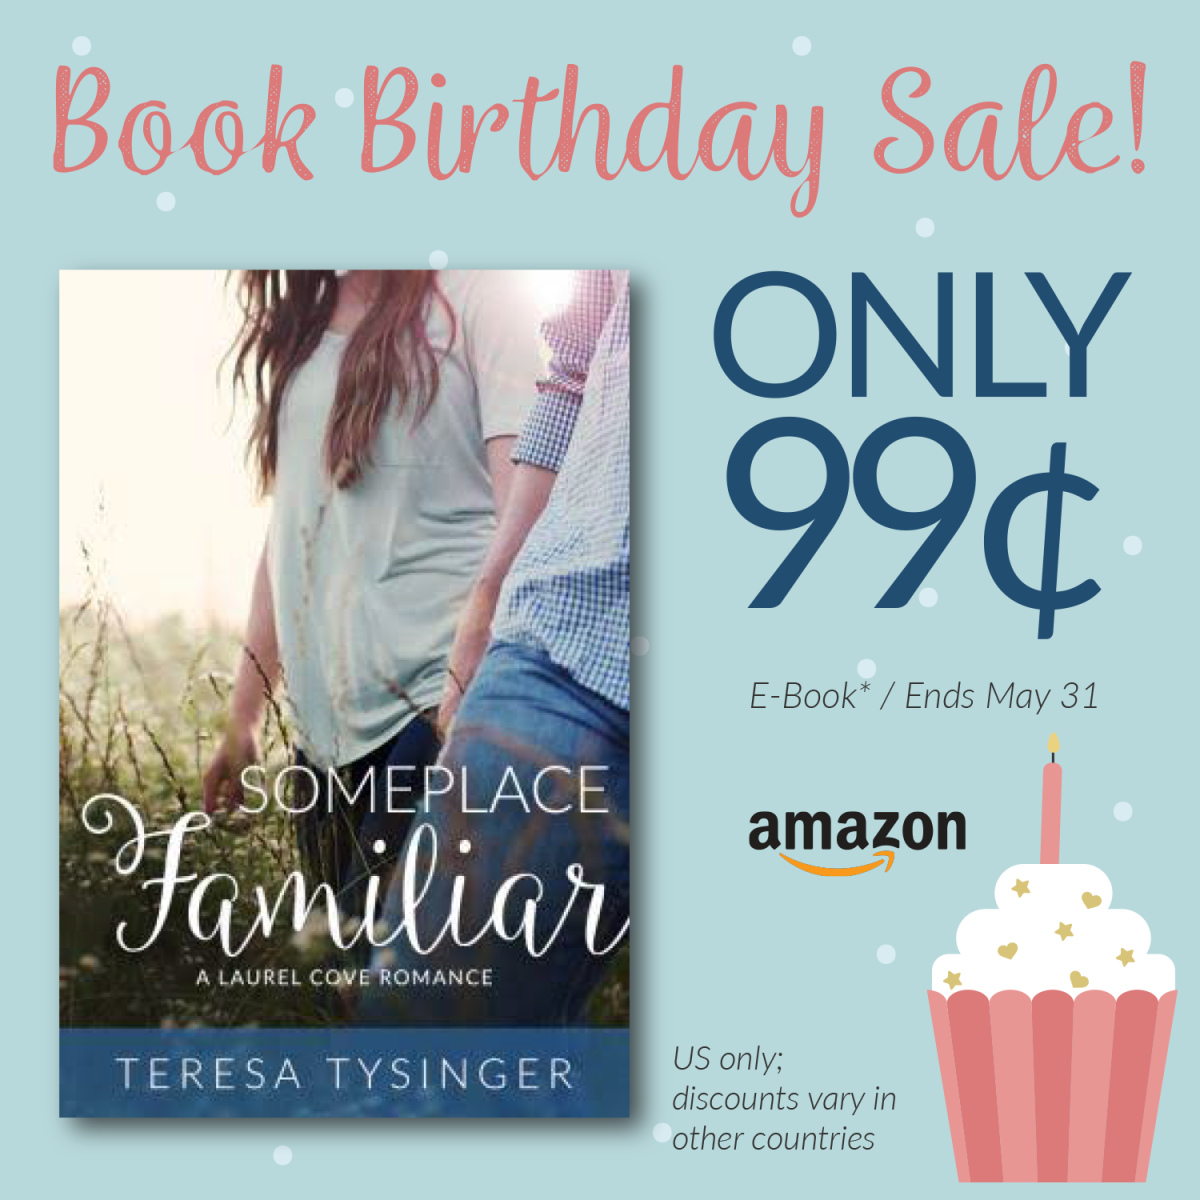 Get Someplace Familiar by Teresa Tysinger for ONLY $0.99 this month!